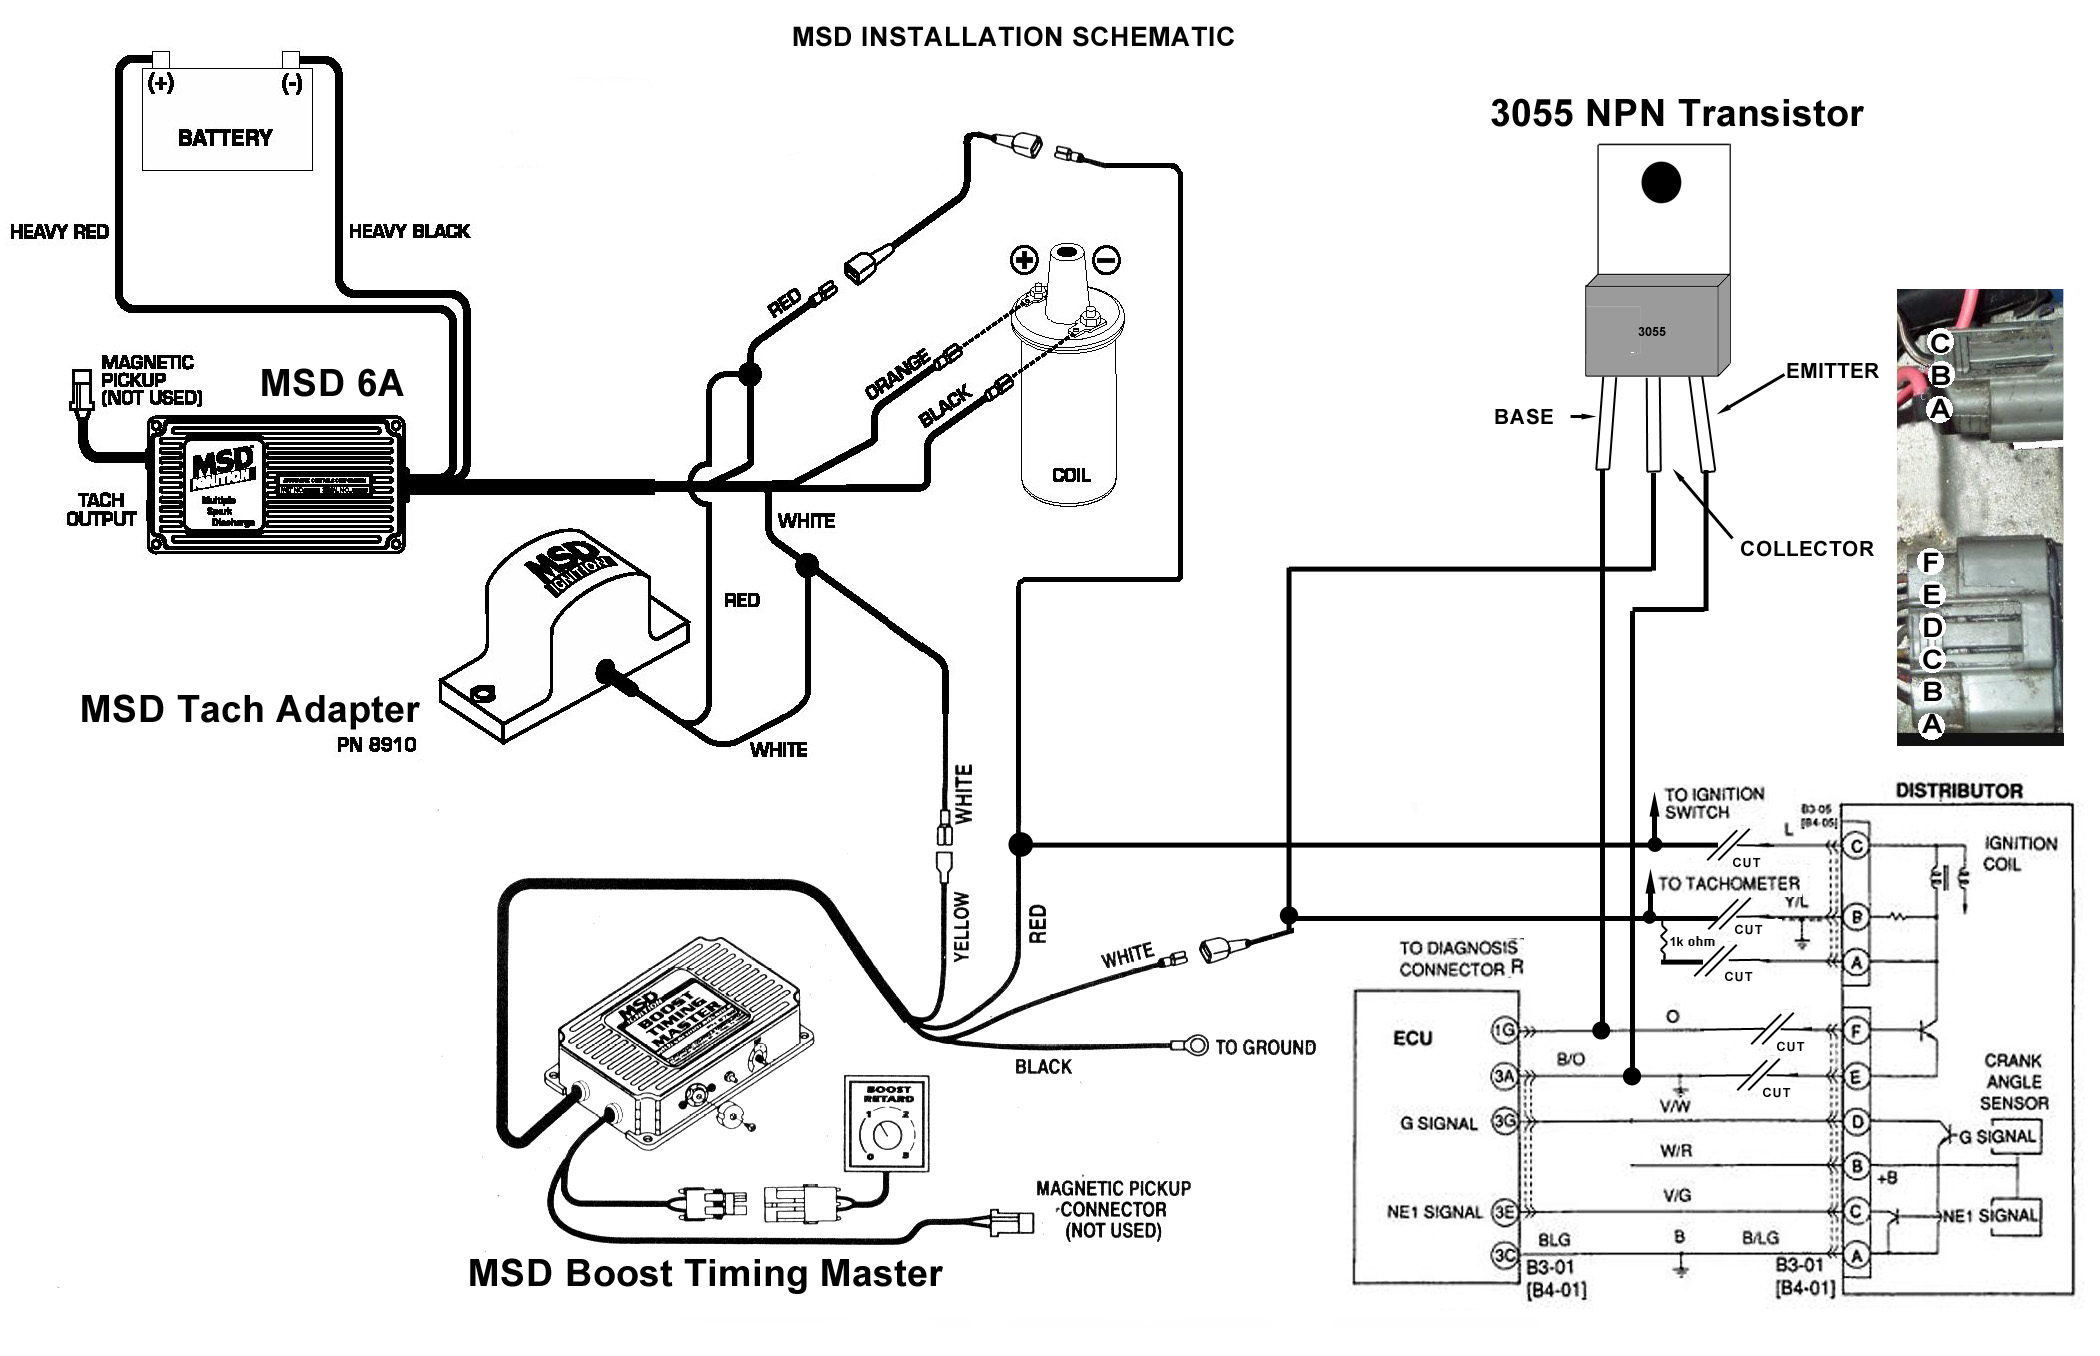 Msd Boost Timing Master Wiring Diagram : 38 Wiring Diagram